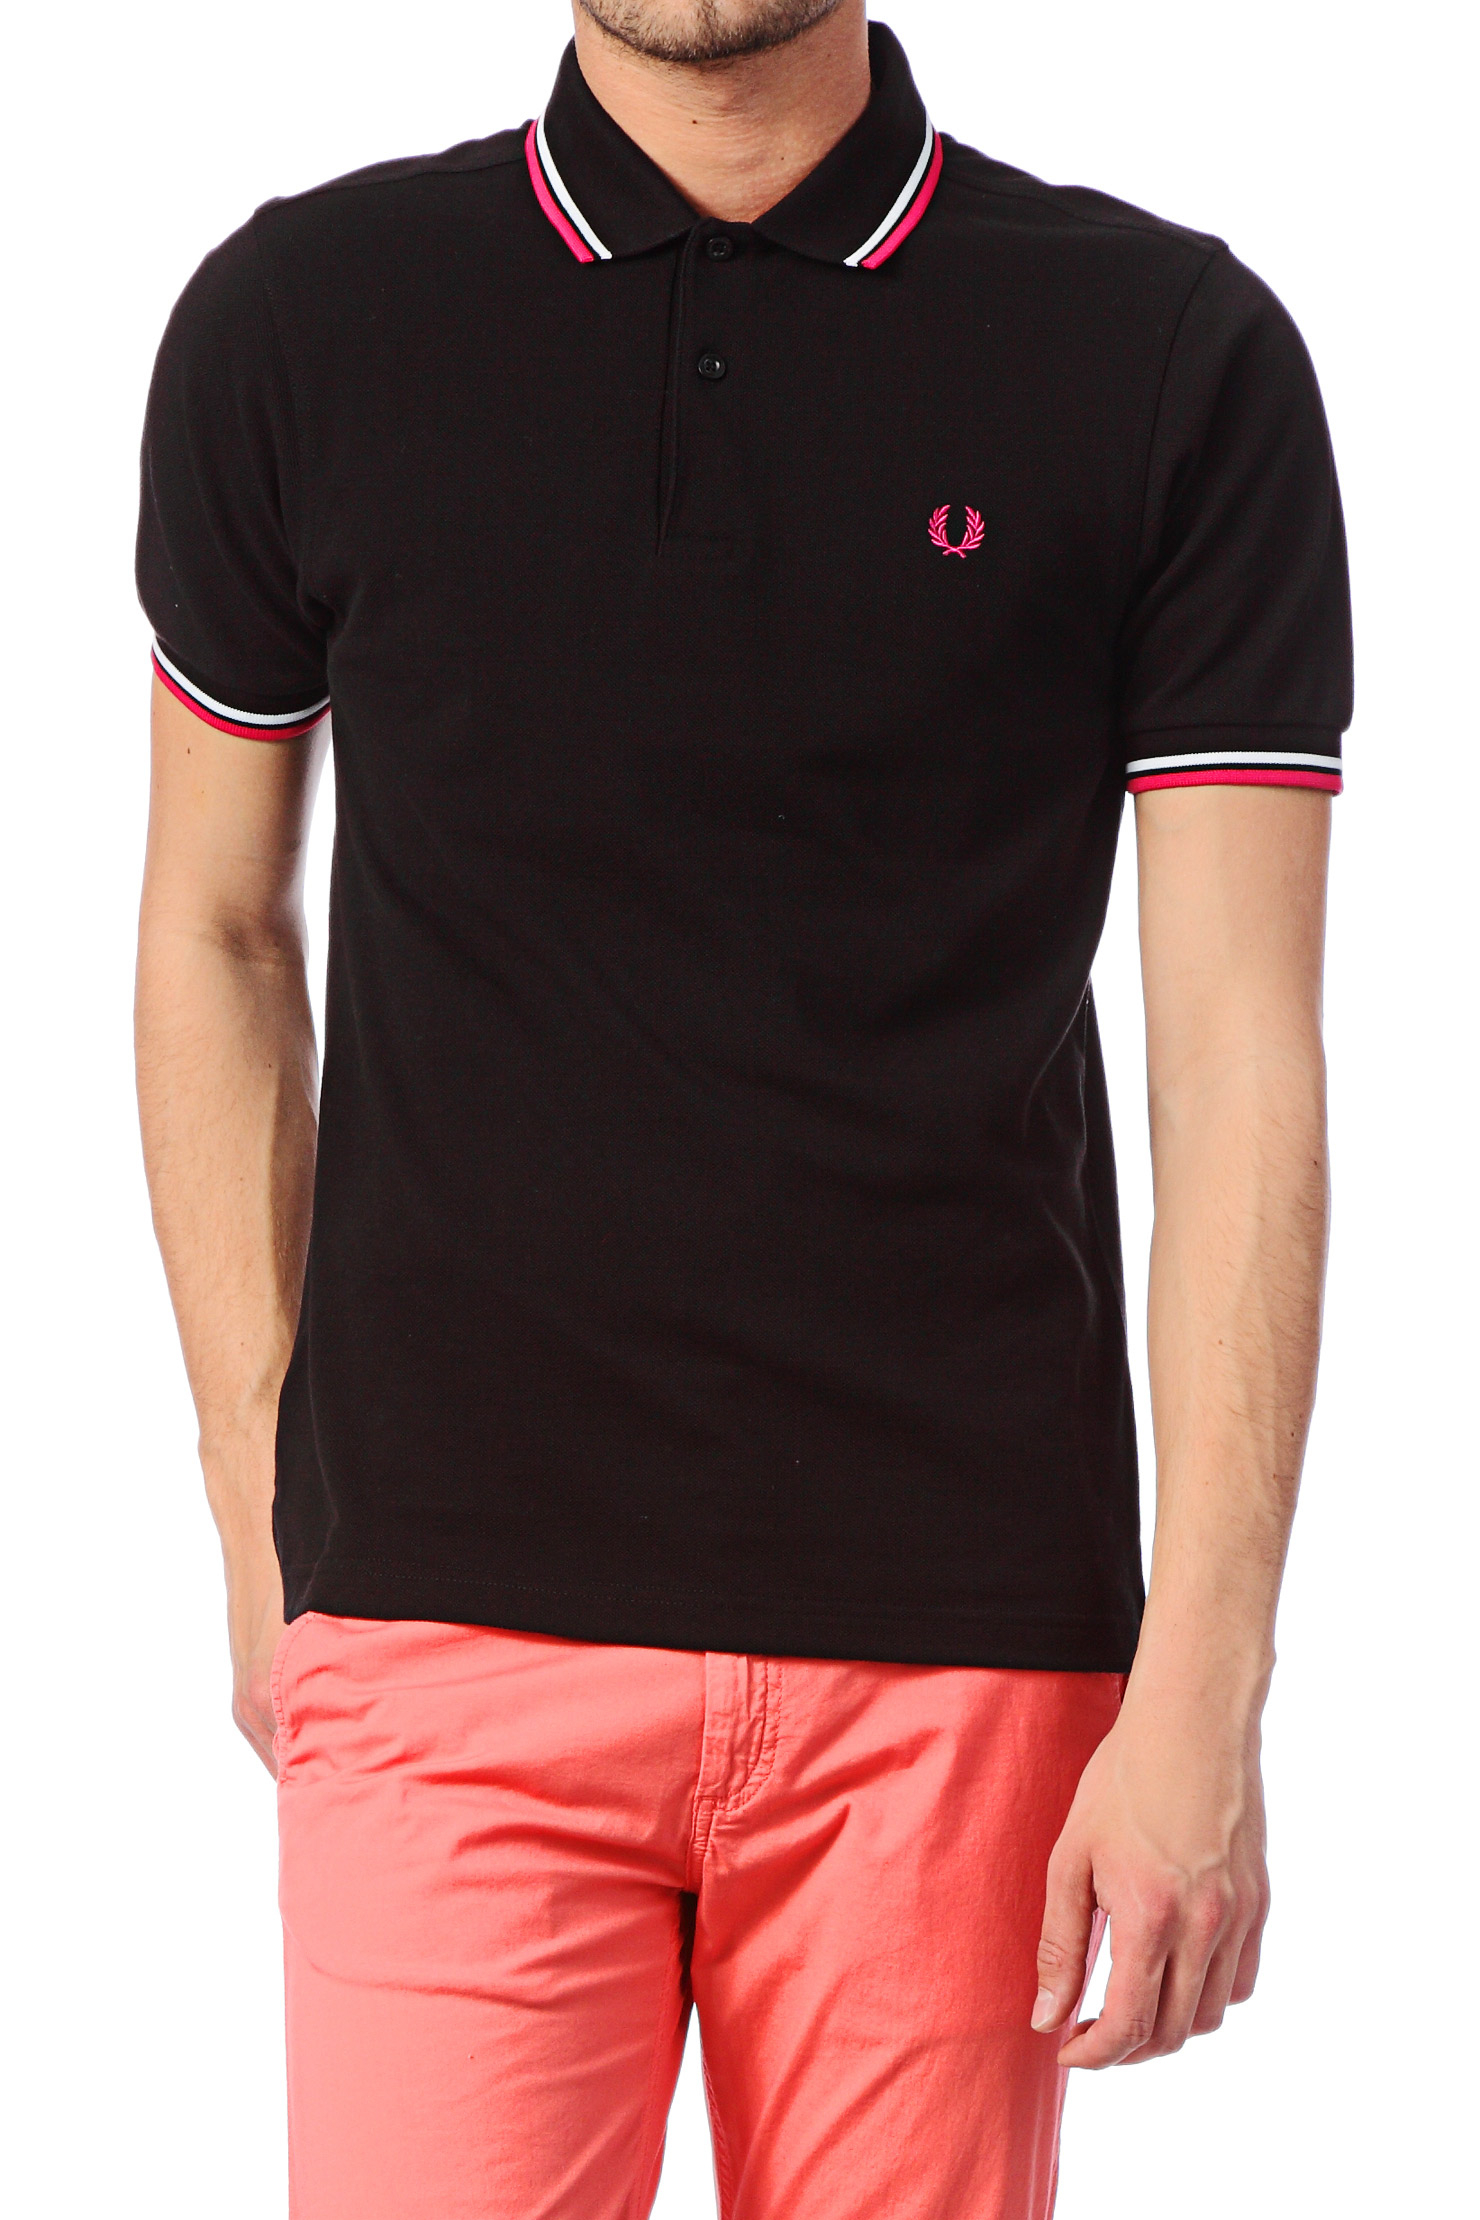 fred perry polo shirt slim fit twin tipped shirt in black. Black Bedroom Furniture Sets. Home Design Ideas